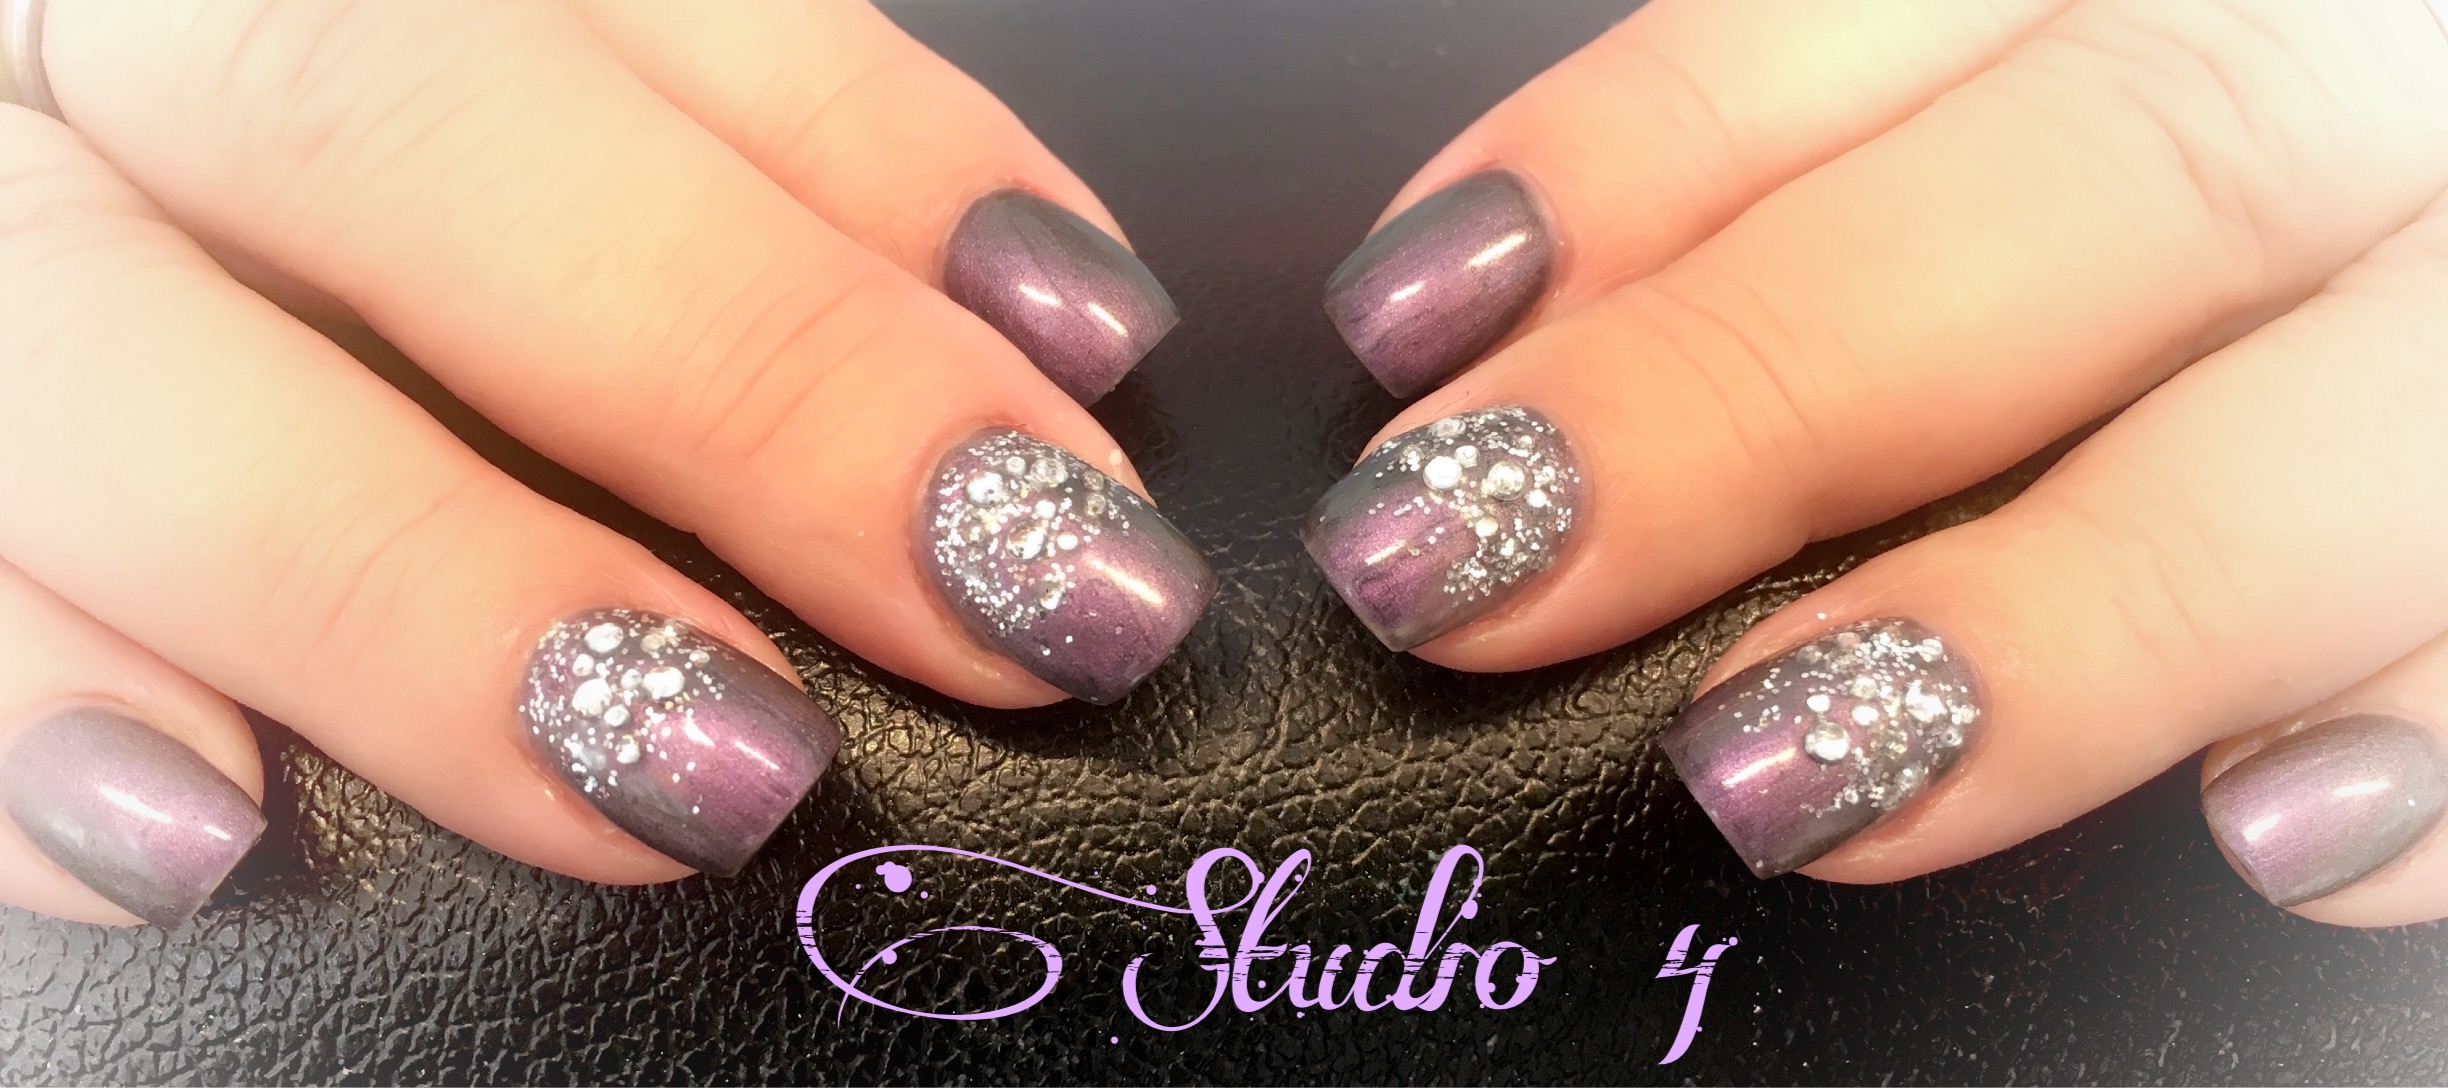 Referenzen Studio 4 Nageldesign Wimpernverlangerung